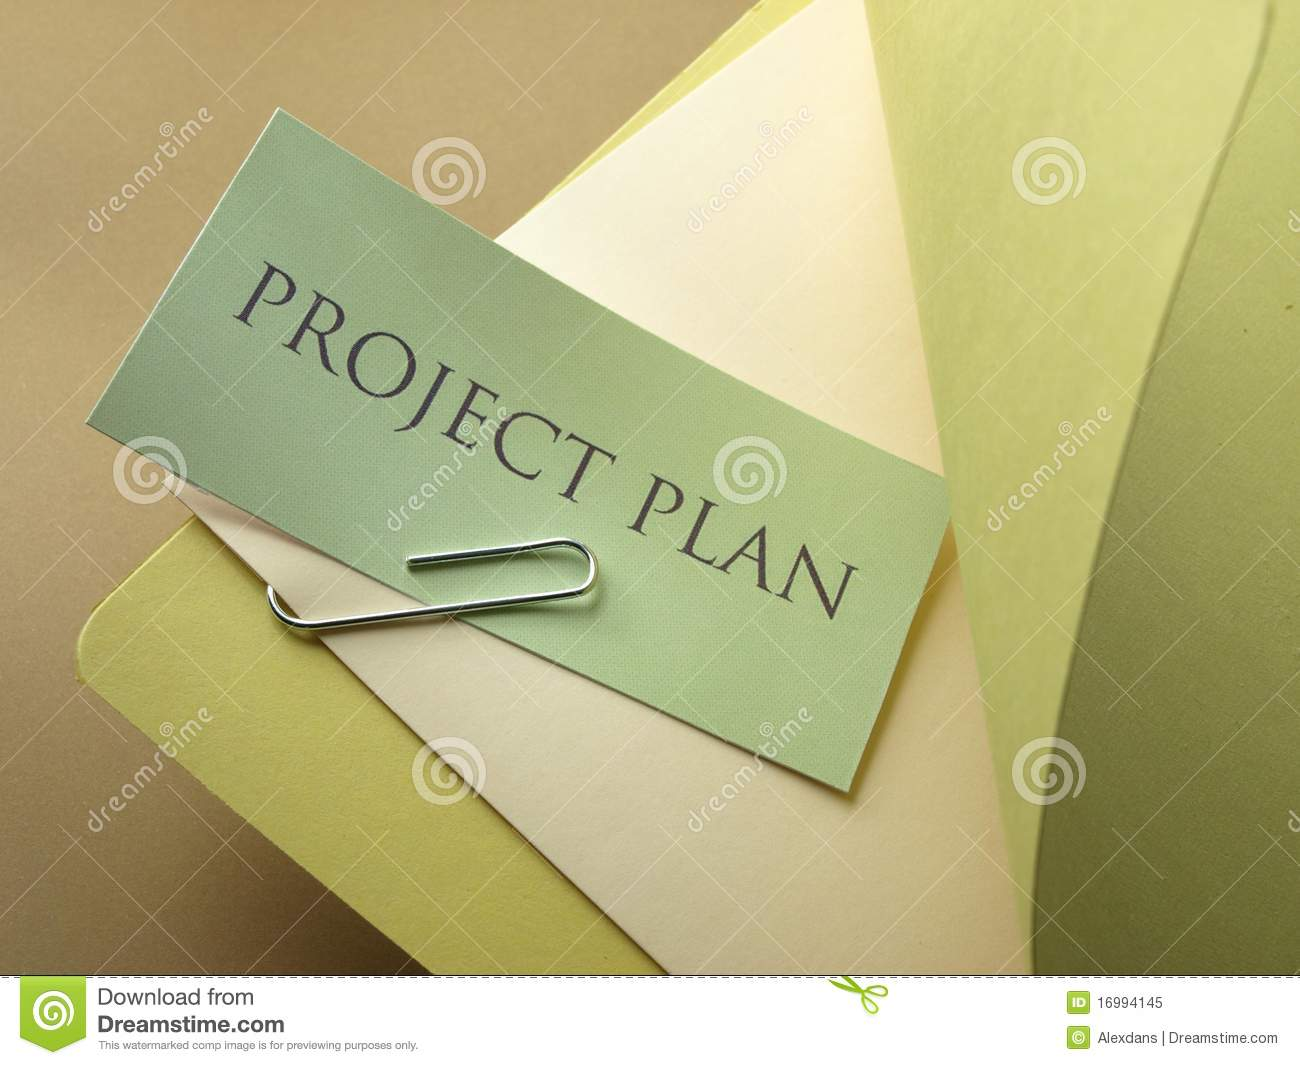 Photograph of the upper right of a folder, with a project plan.